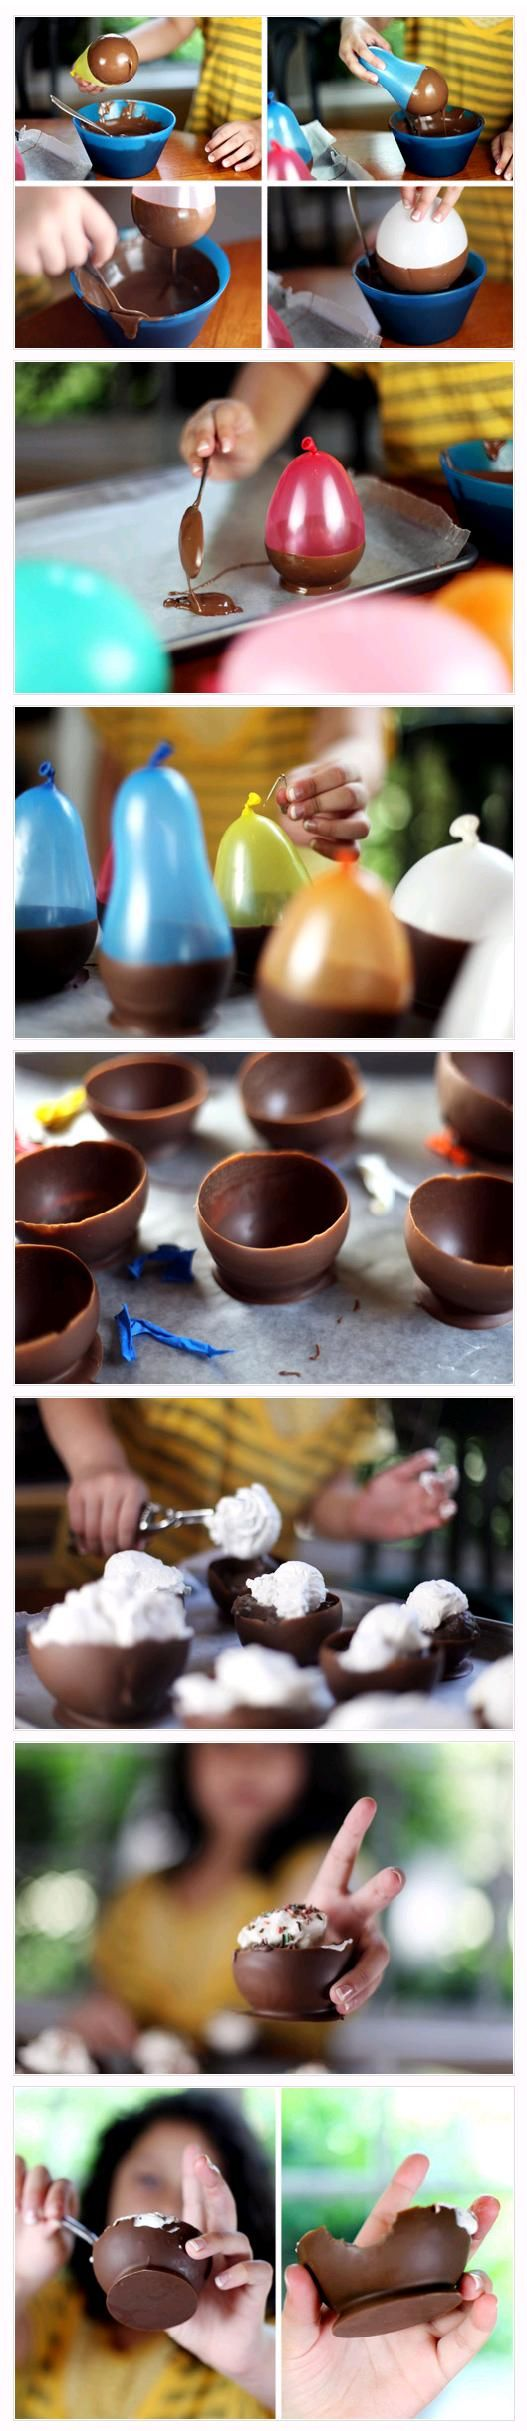 What a great idea! Fun project for kits to make their own bowls for ice cream?